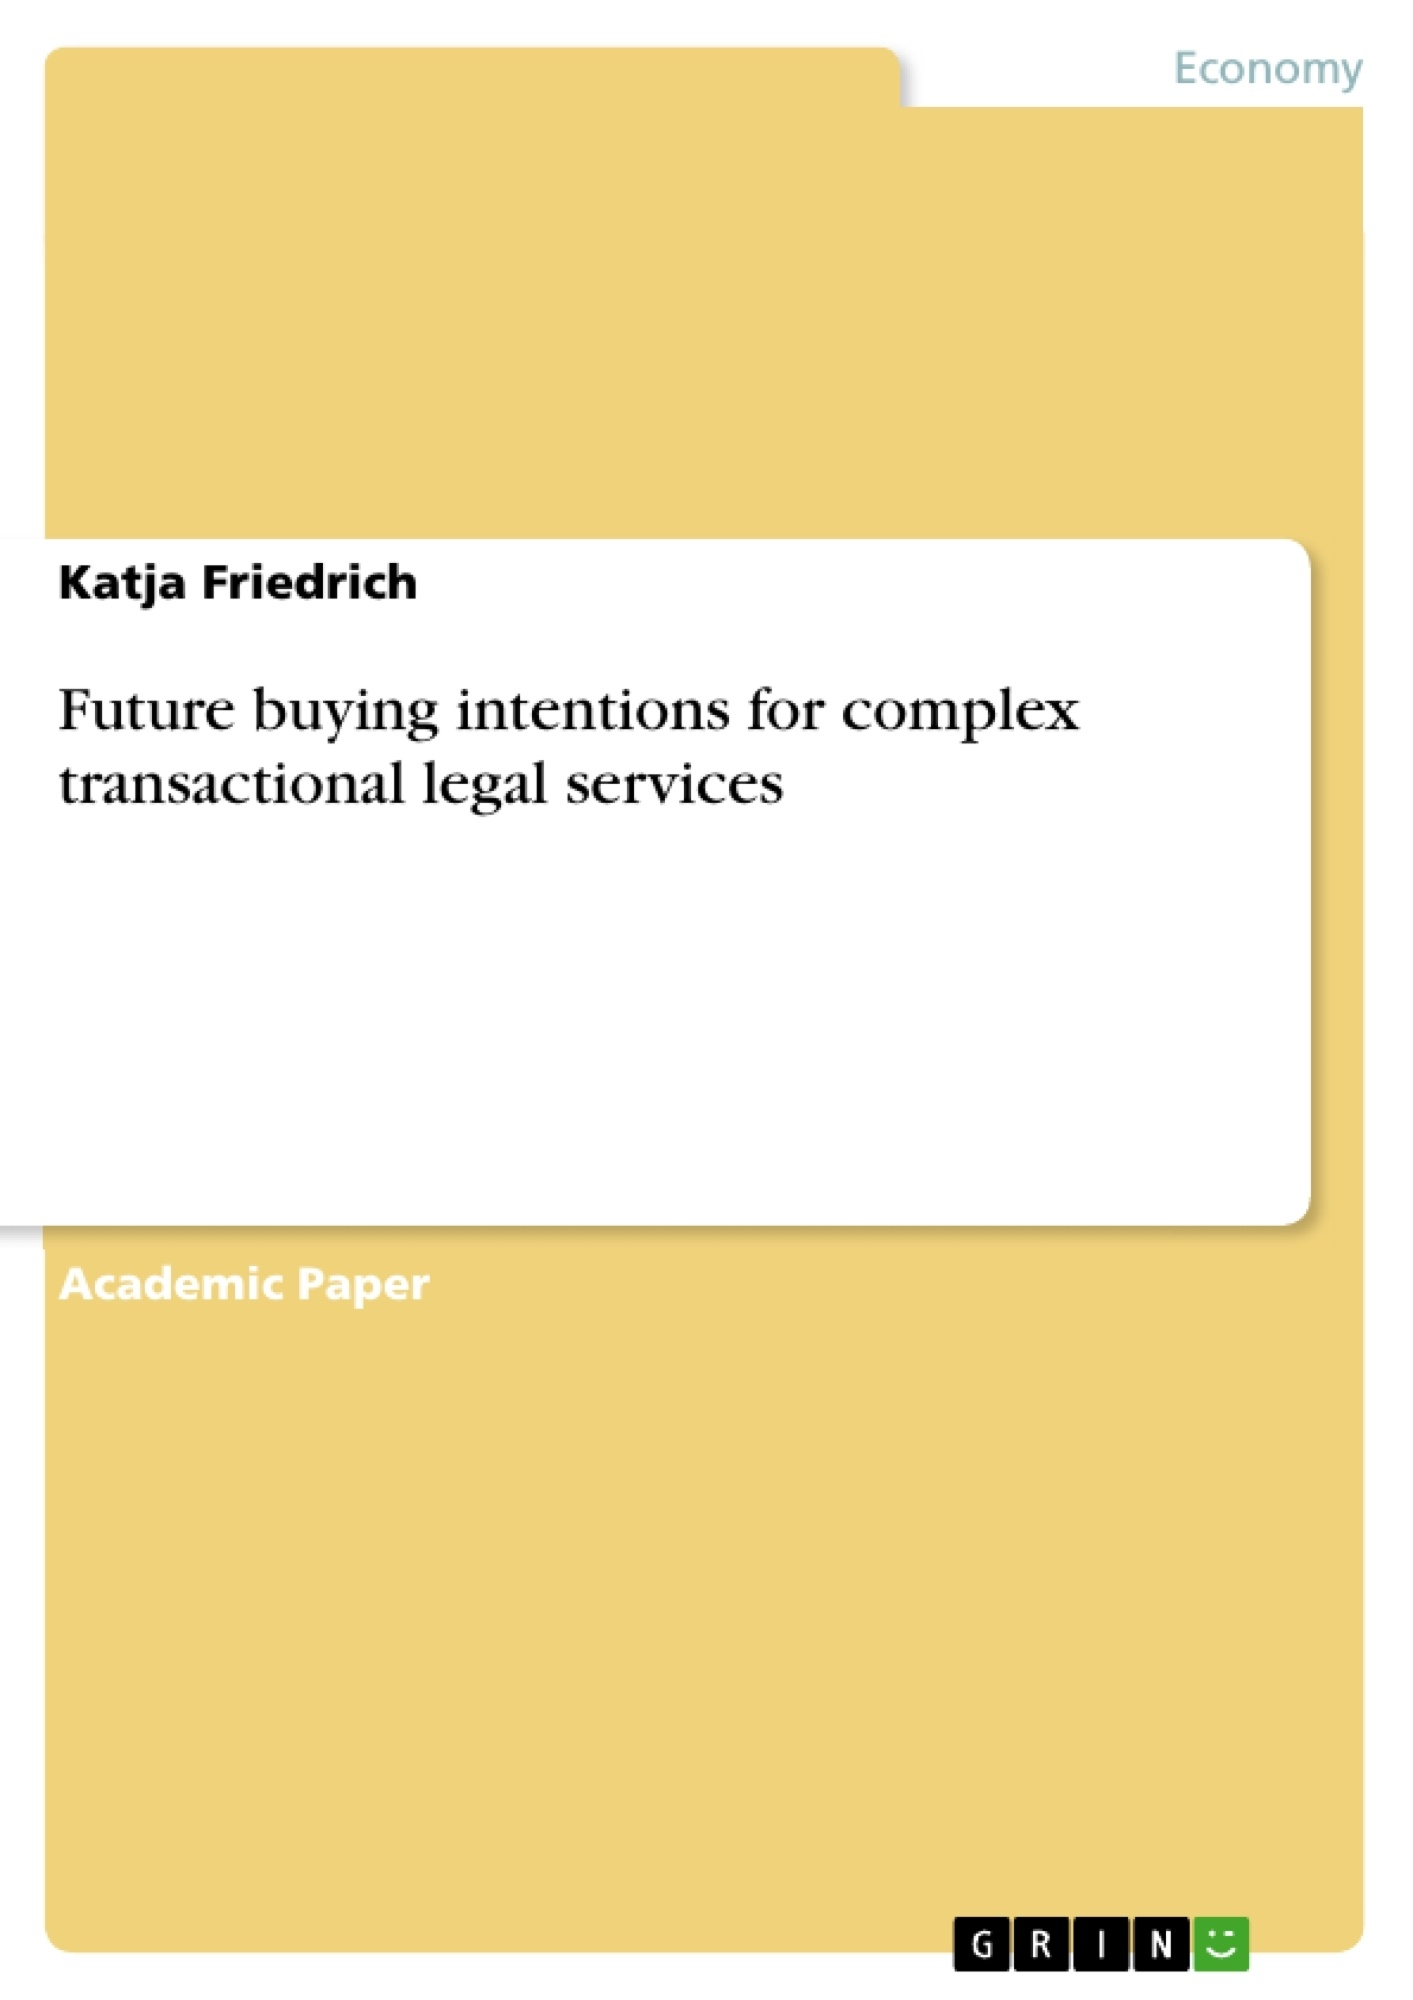 Title: Future buying intentions for complex transactional legal services